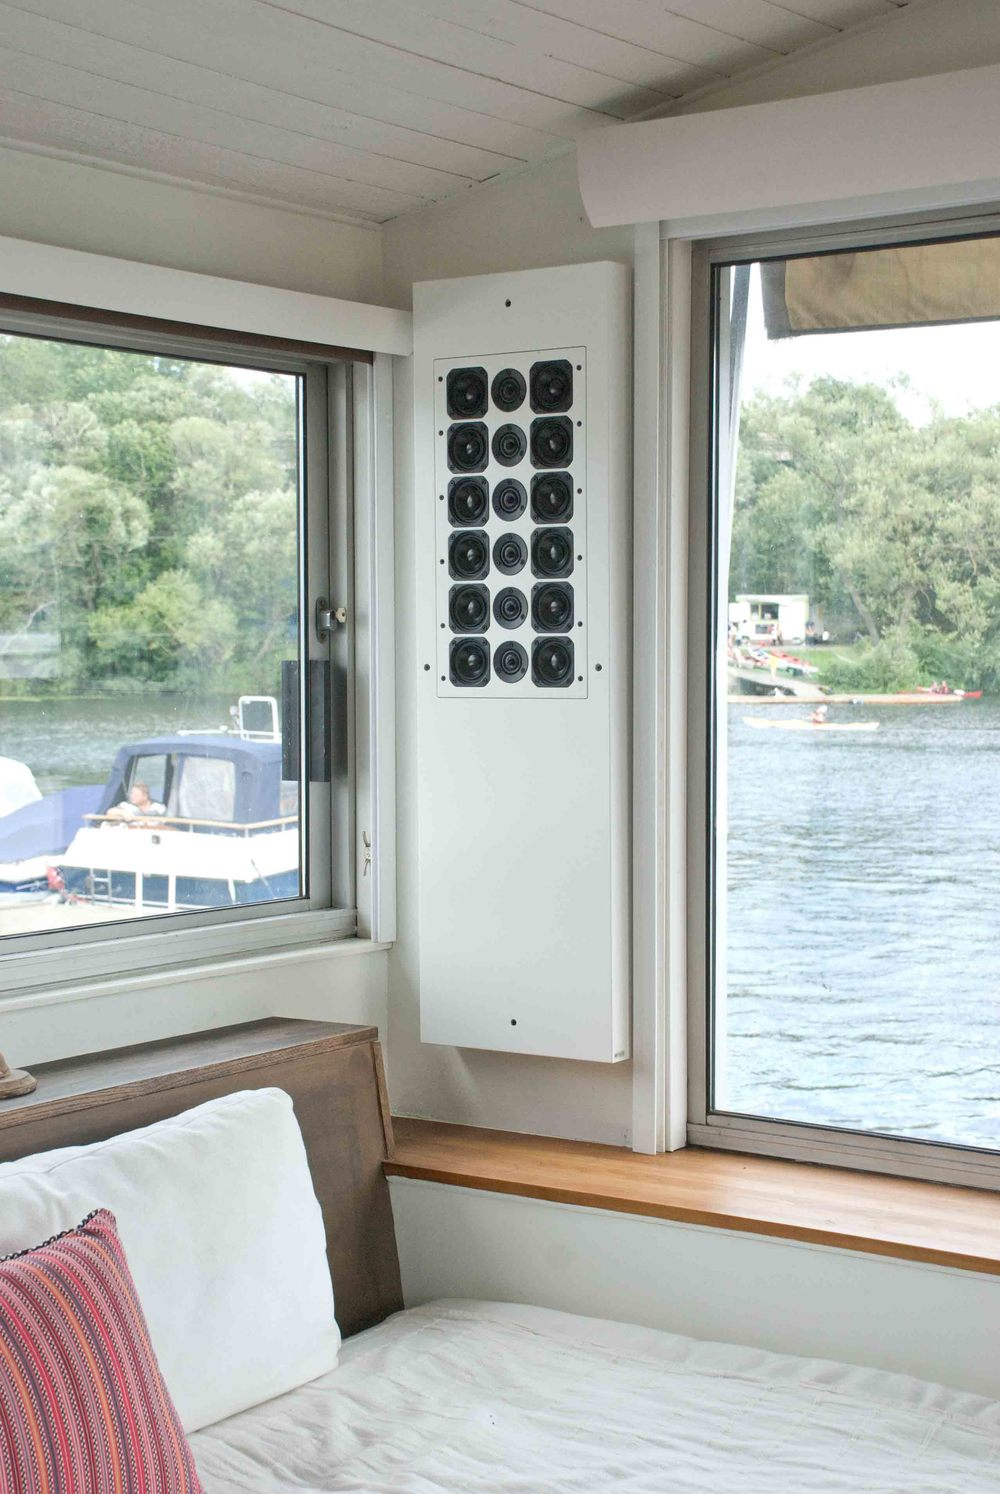 Home_Audio_House_Boat_STHLM-0079.jpg